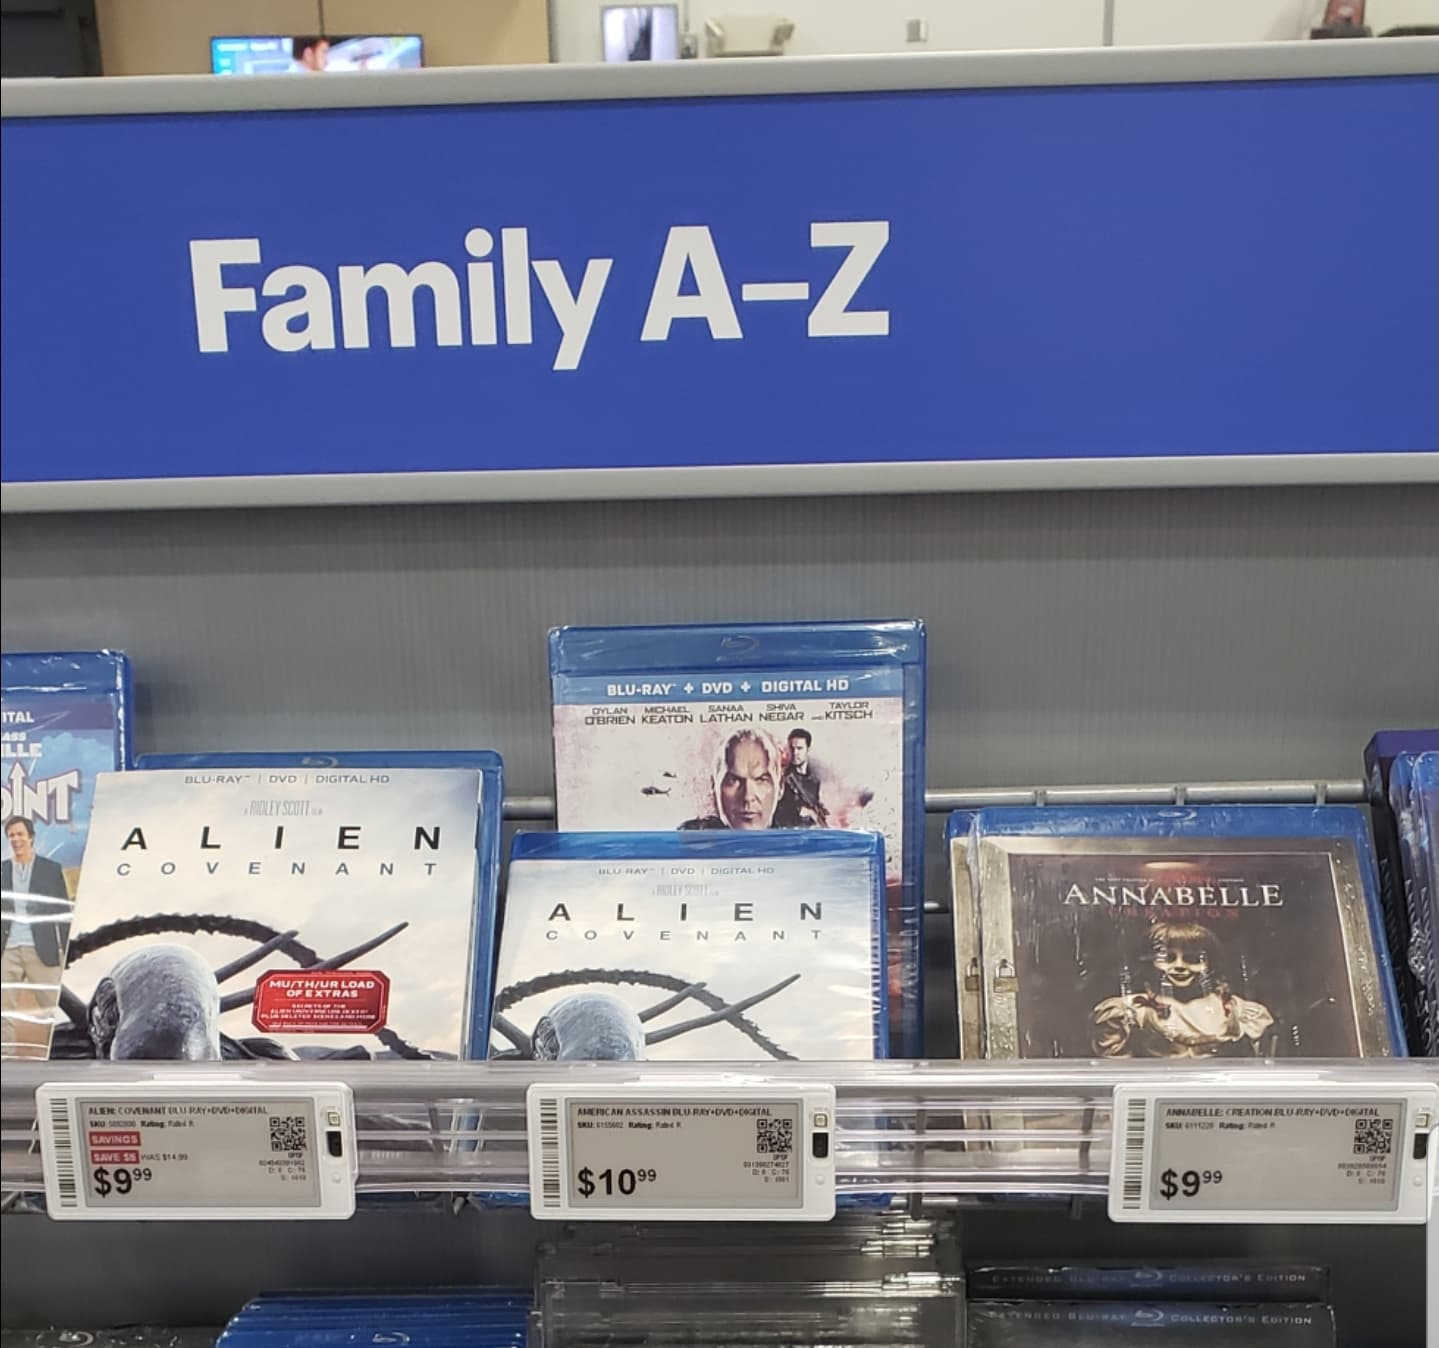 Family A-Z at Best Buy